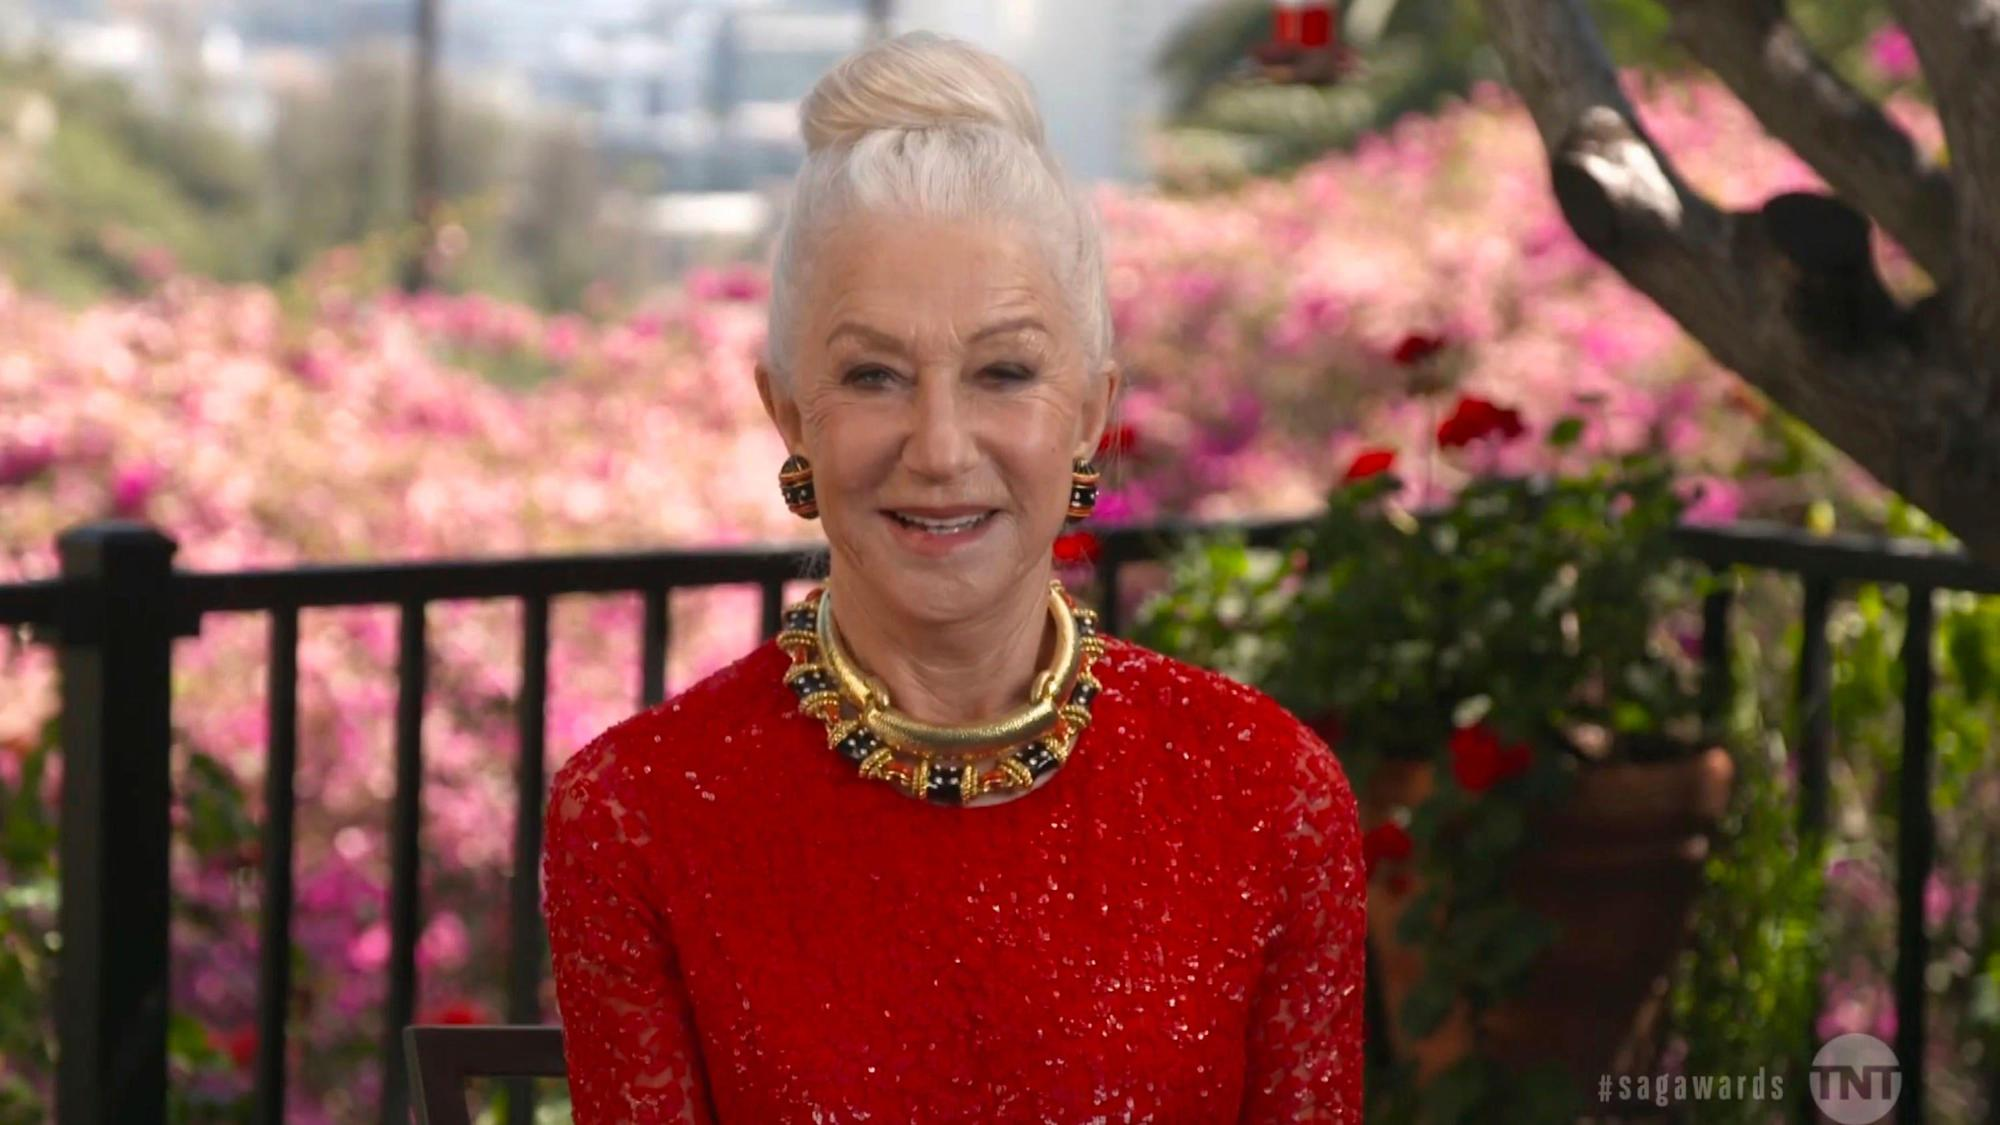 Dame Helen Mirren reveals she had a 'bit of a meeting' with a bear in Nevada